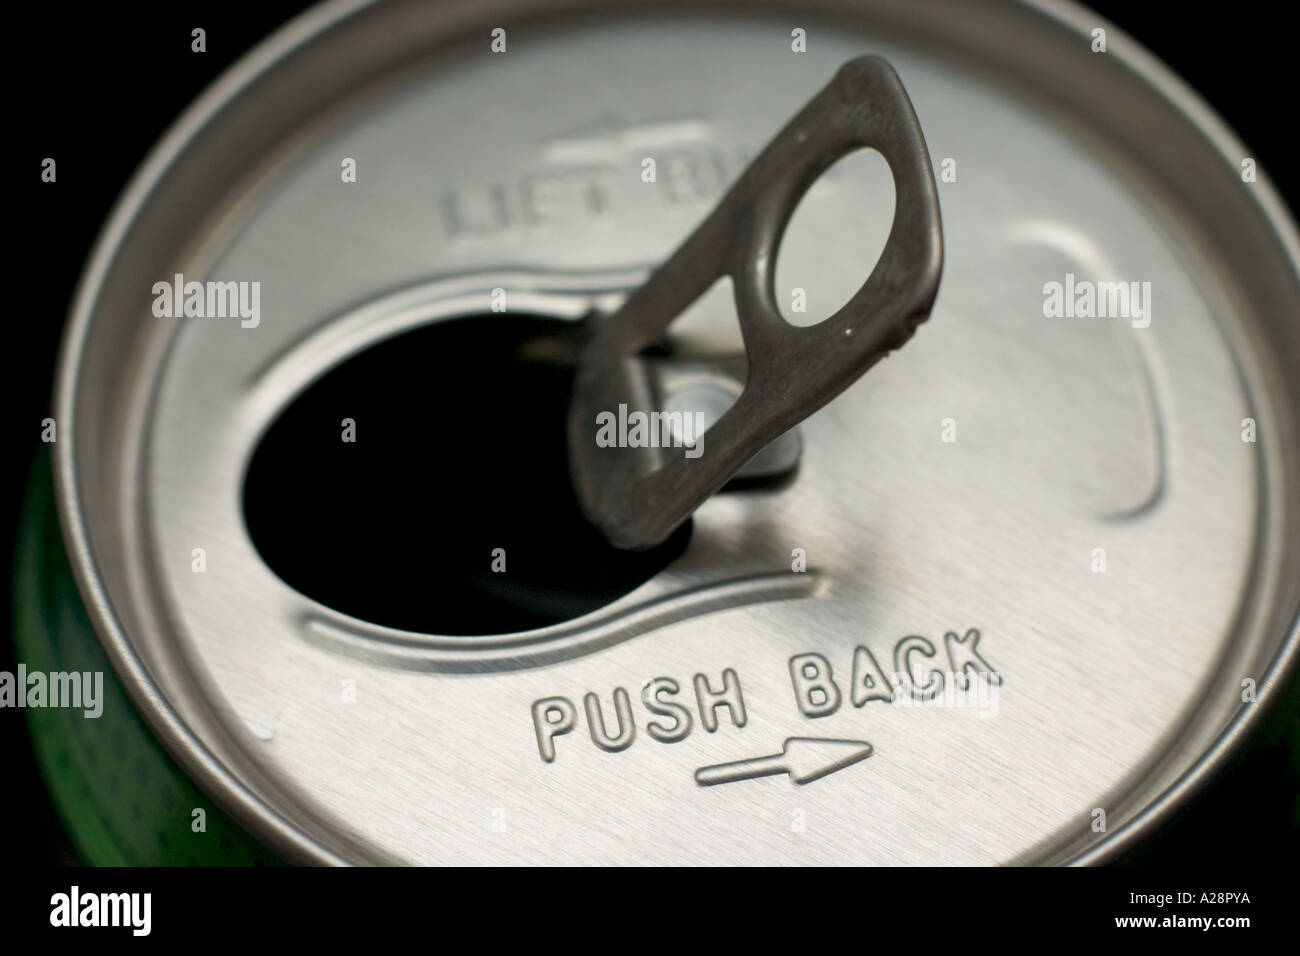 close up of pull ring tab of soft drink can - Stock Image